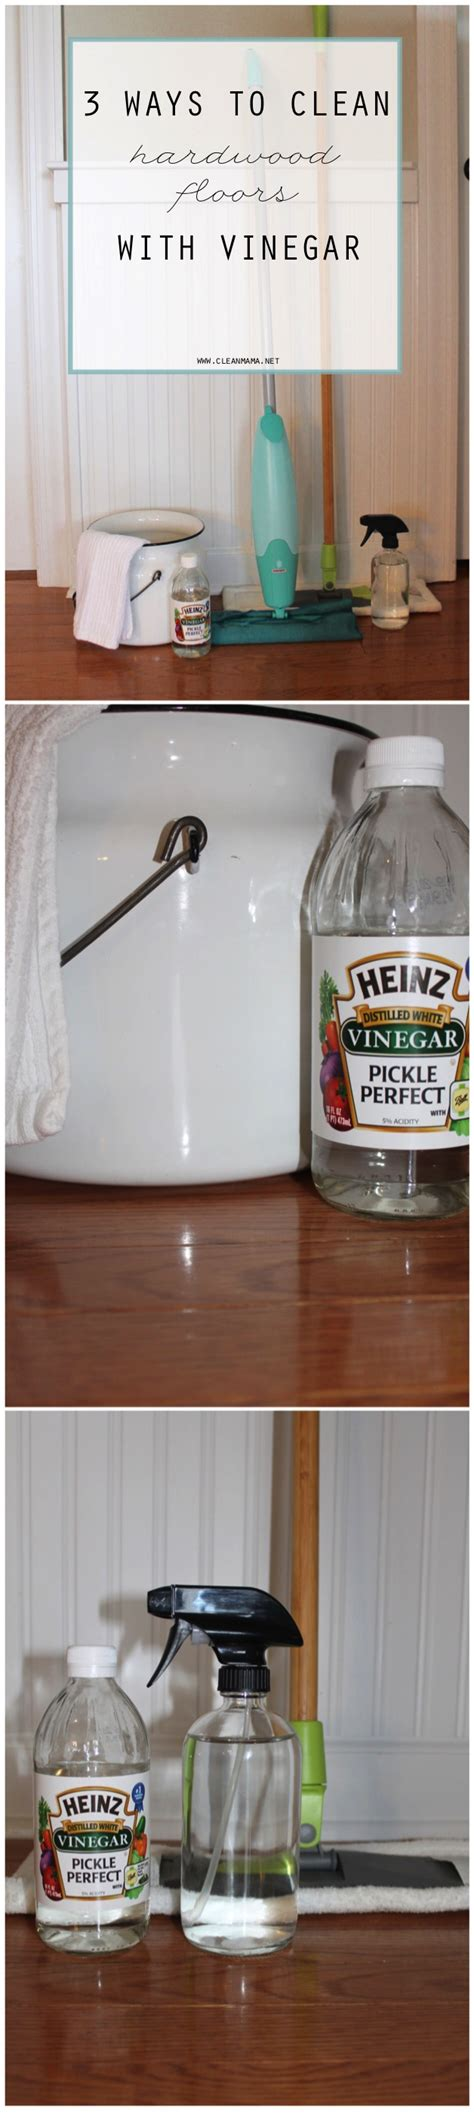 hardwood floors vinegar 3 ways to clean hardwood floors with vinegar